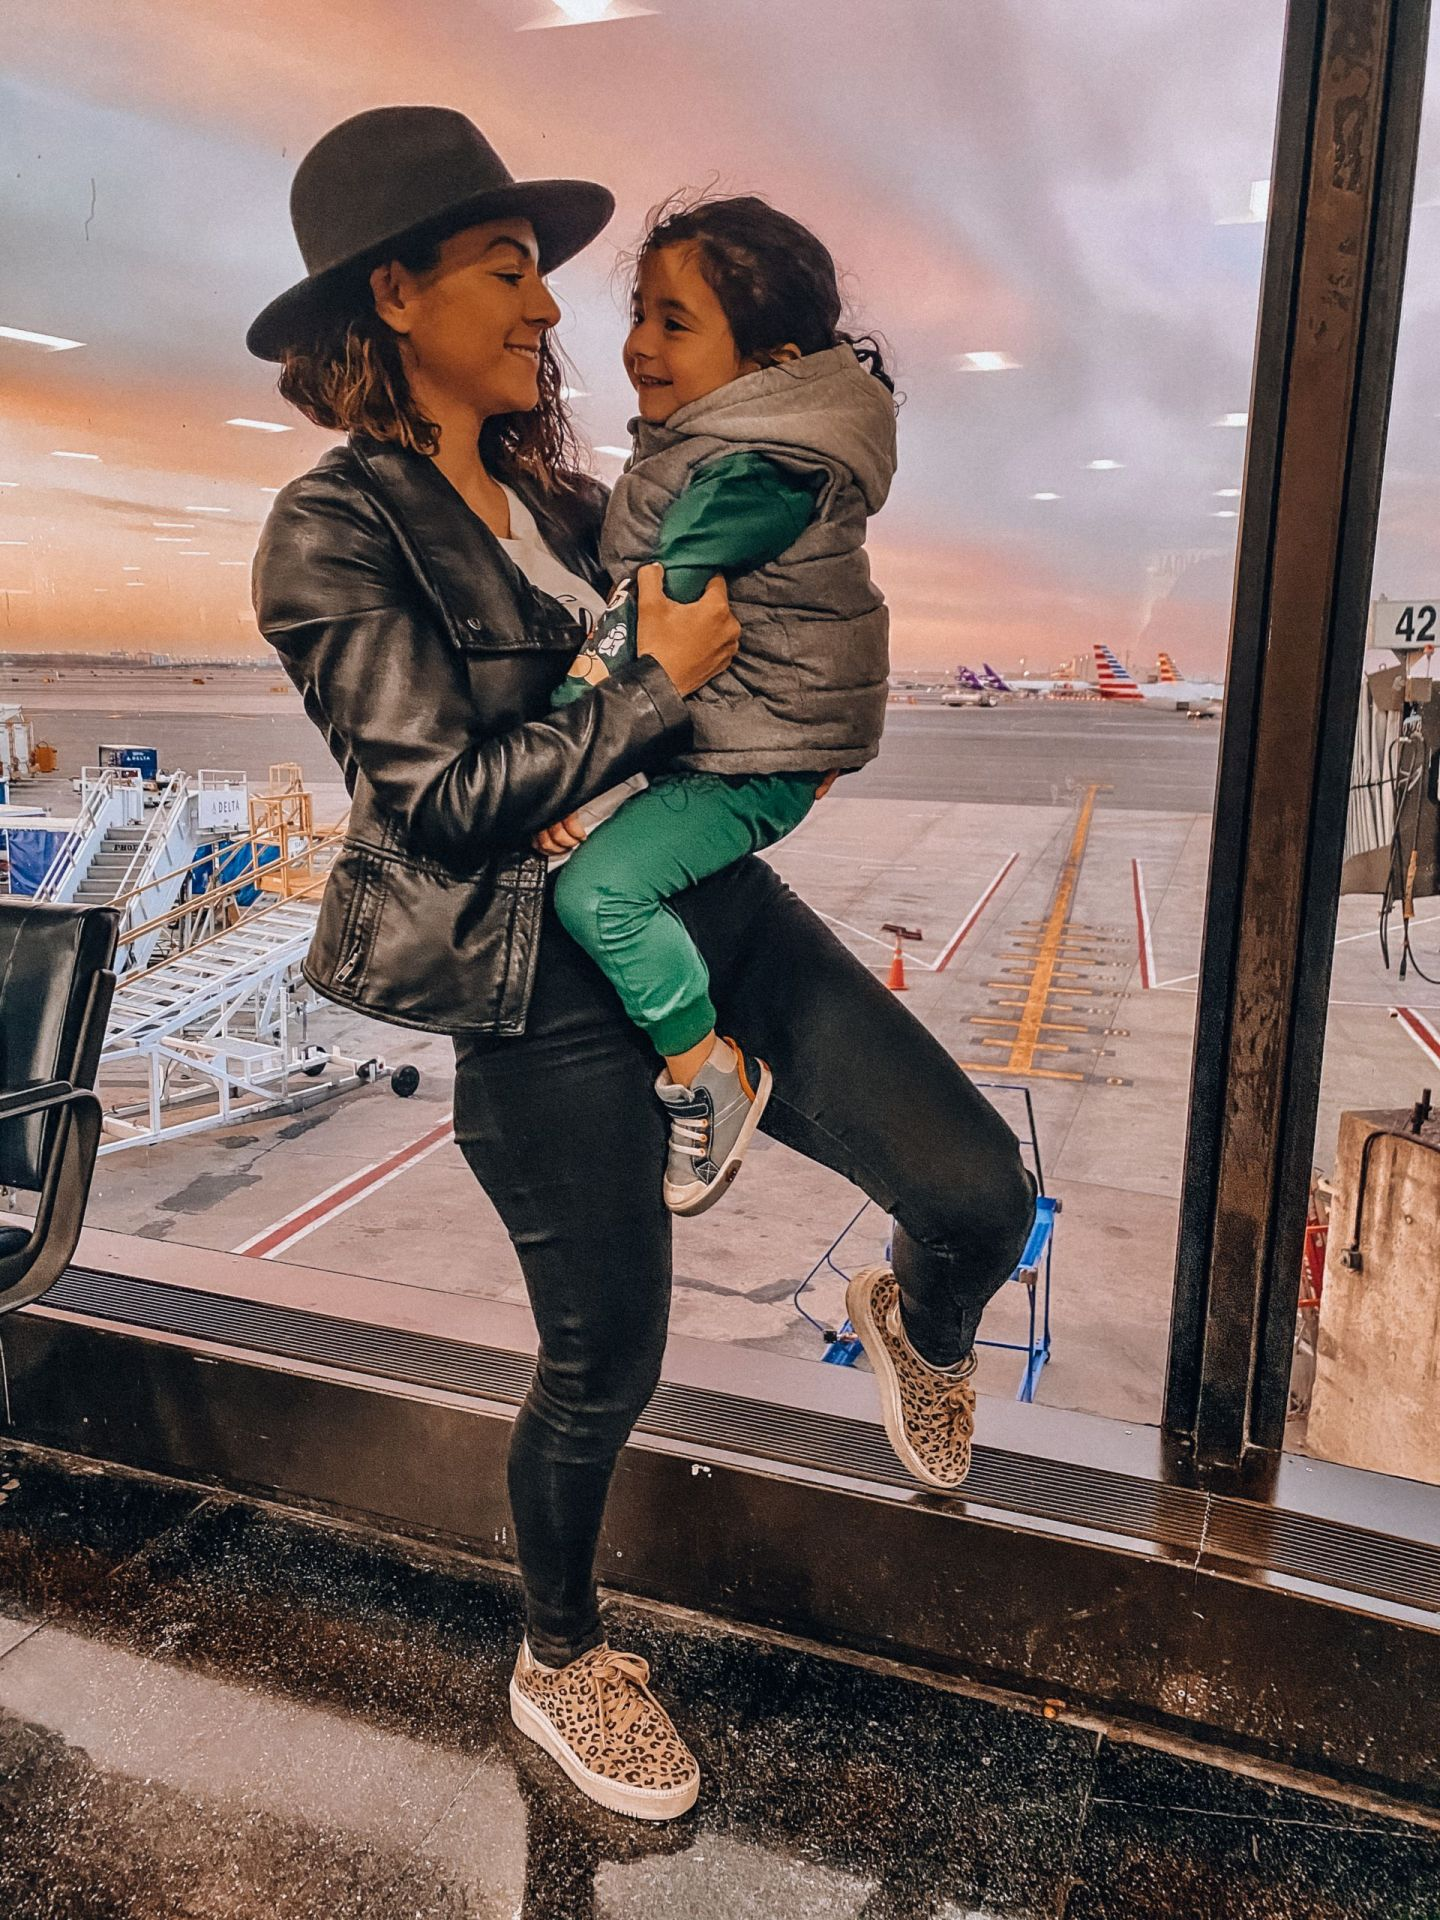 Laura Nava and toddler son at EWR airport